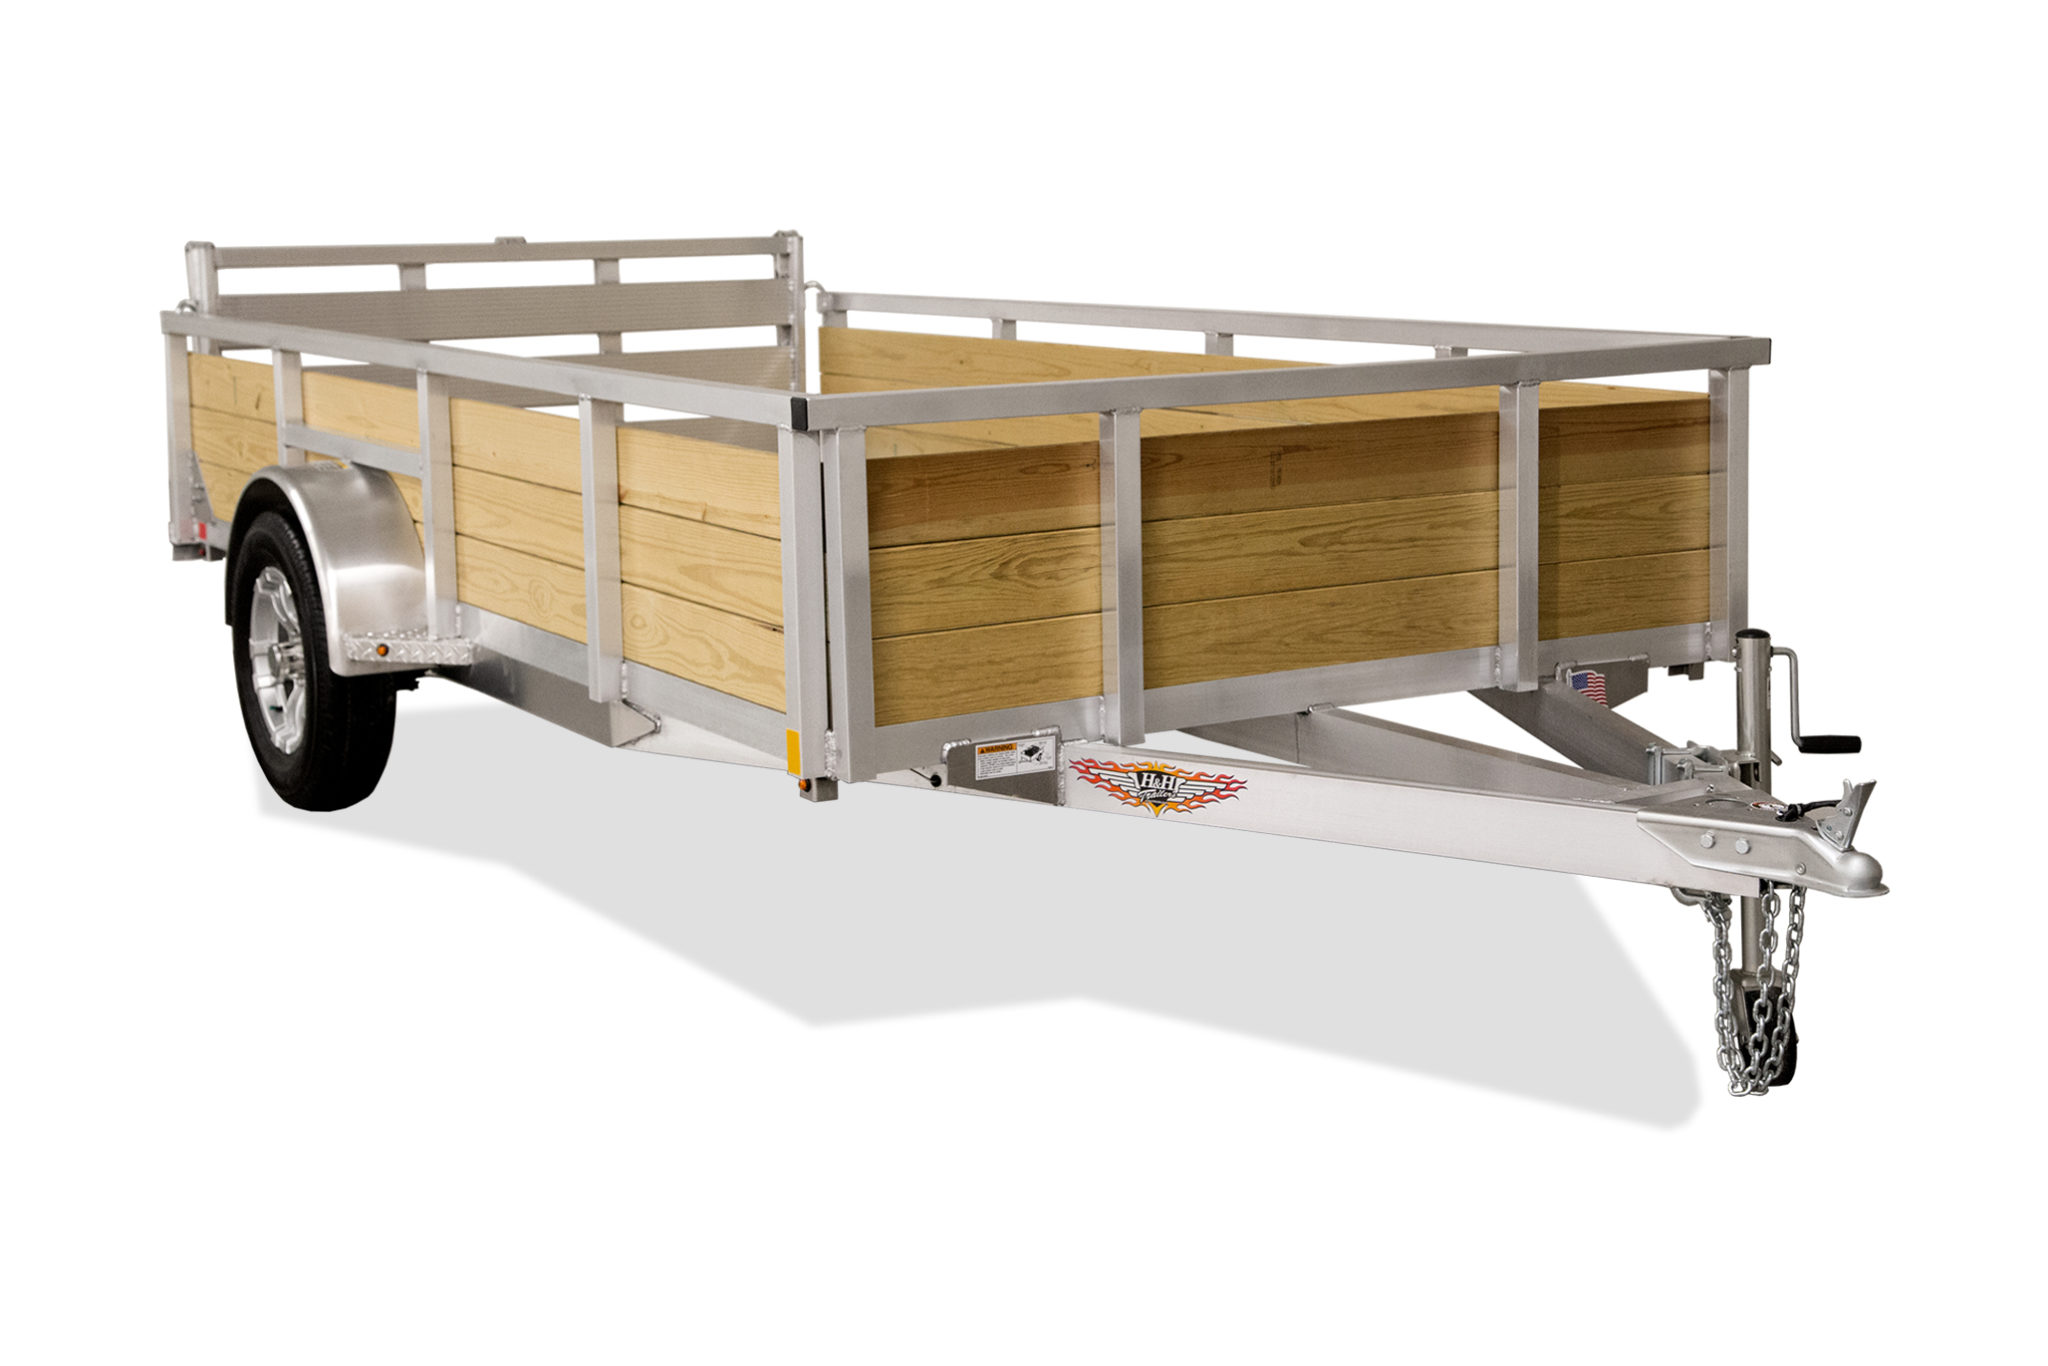 NEW 76X10 WOOD-SIDE ALUMINUM TRAILER